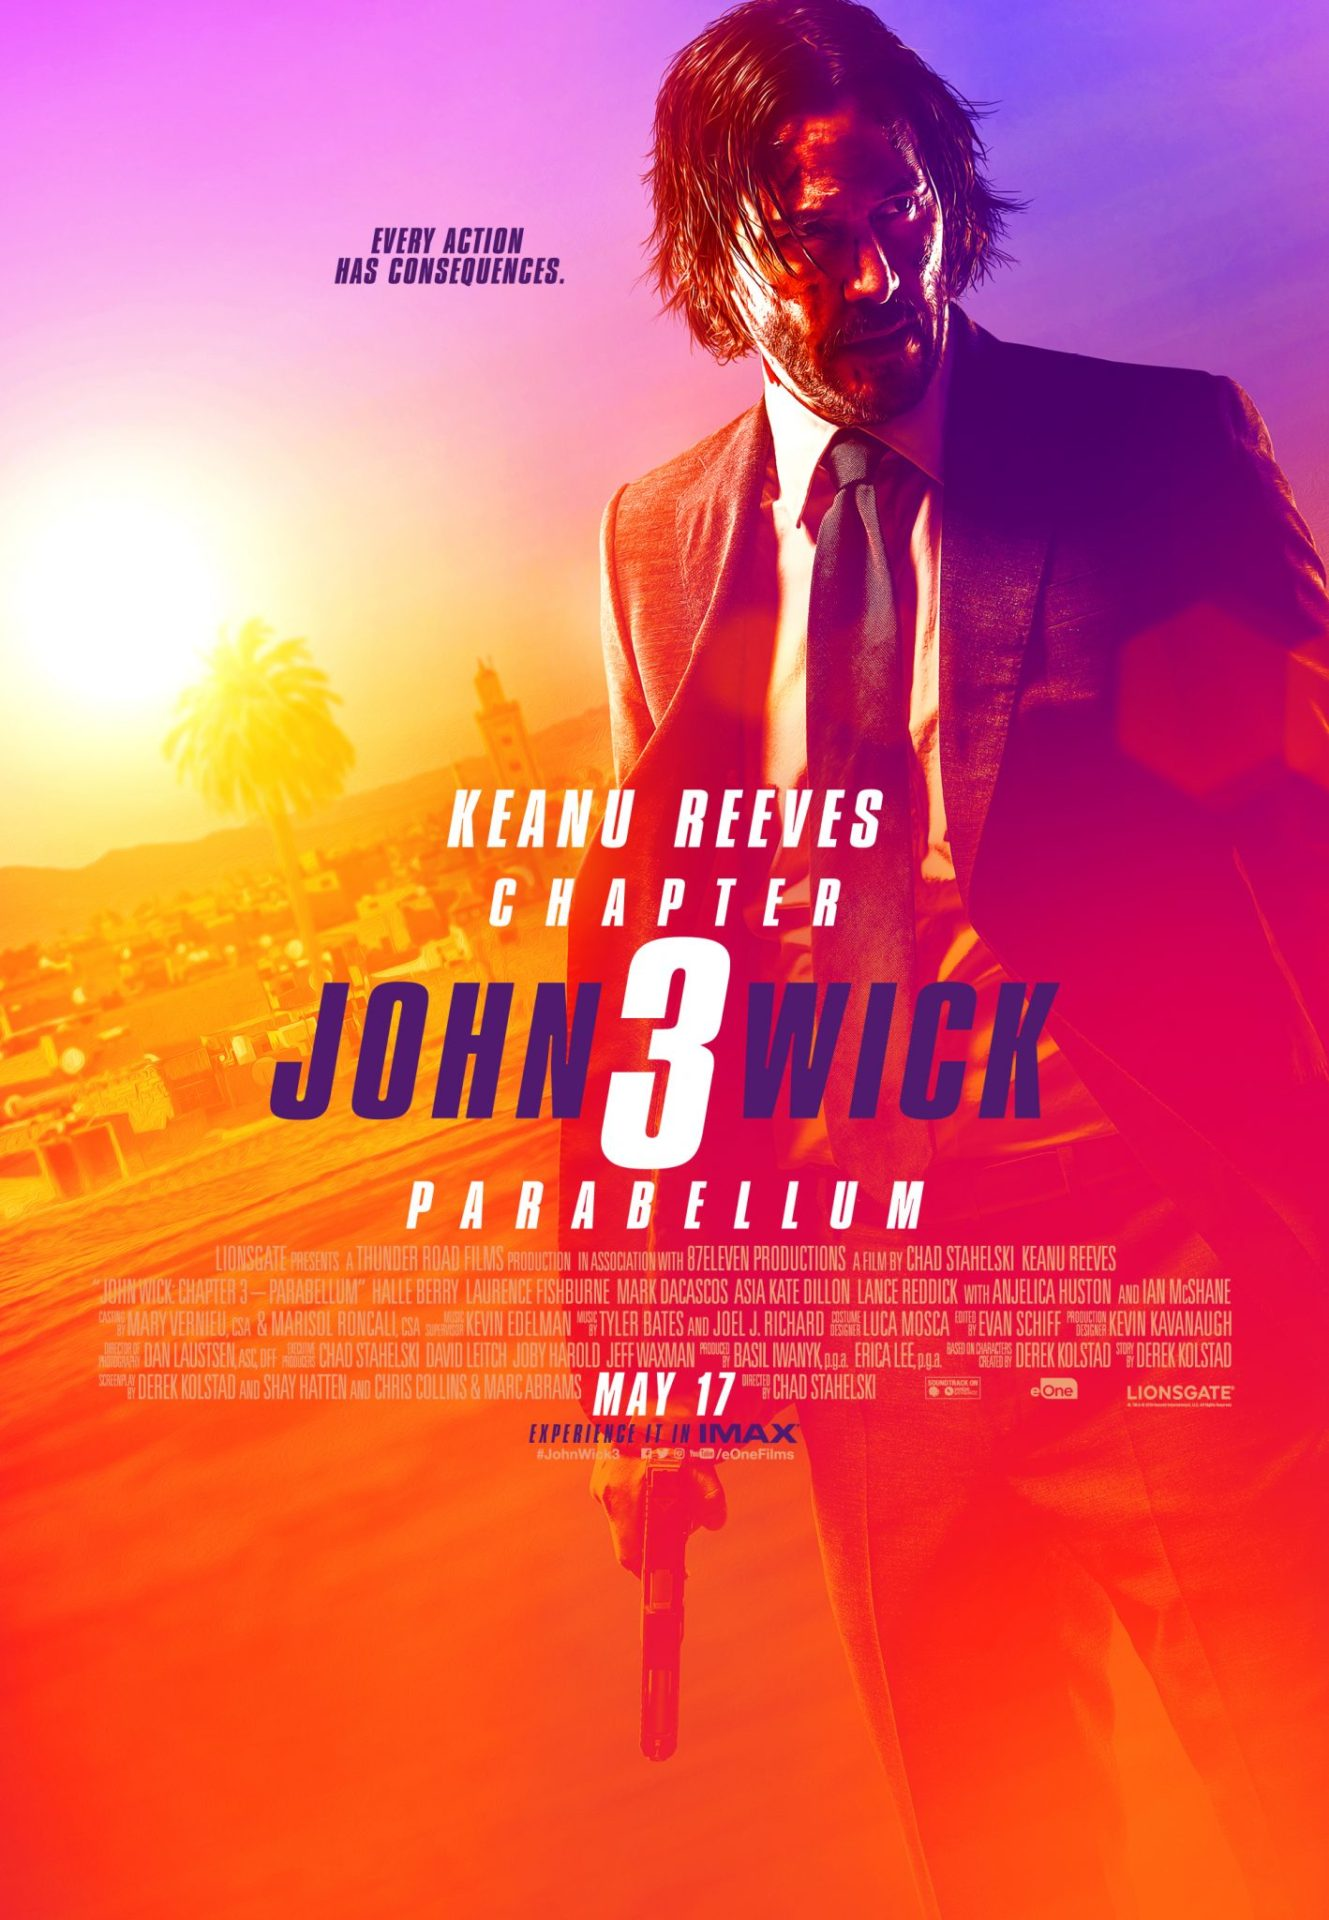 JohnWick3_Payoff_1Sht_27x39_REV